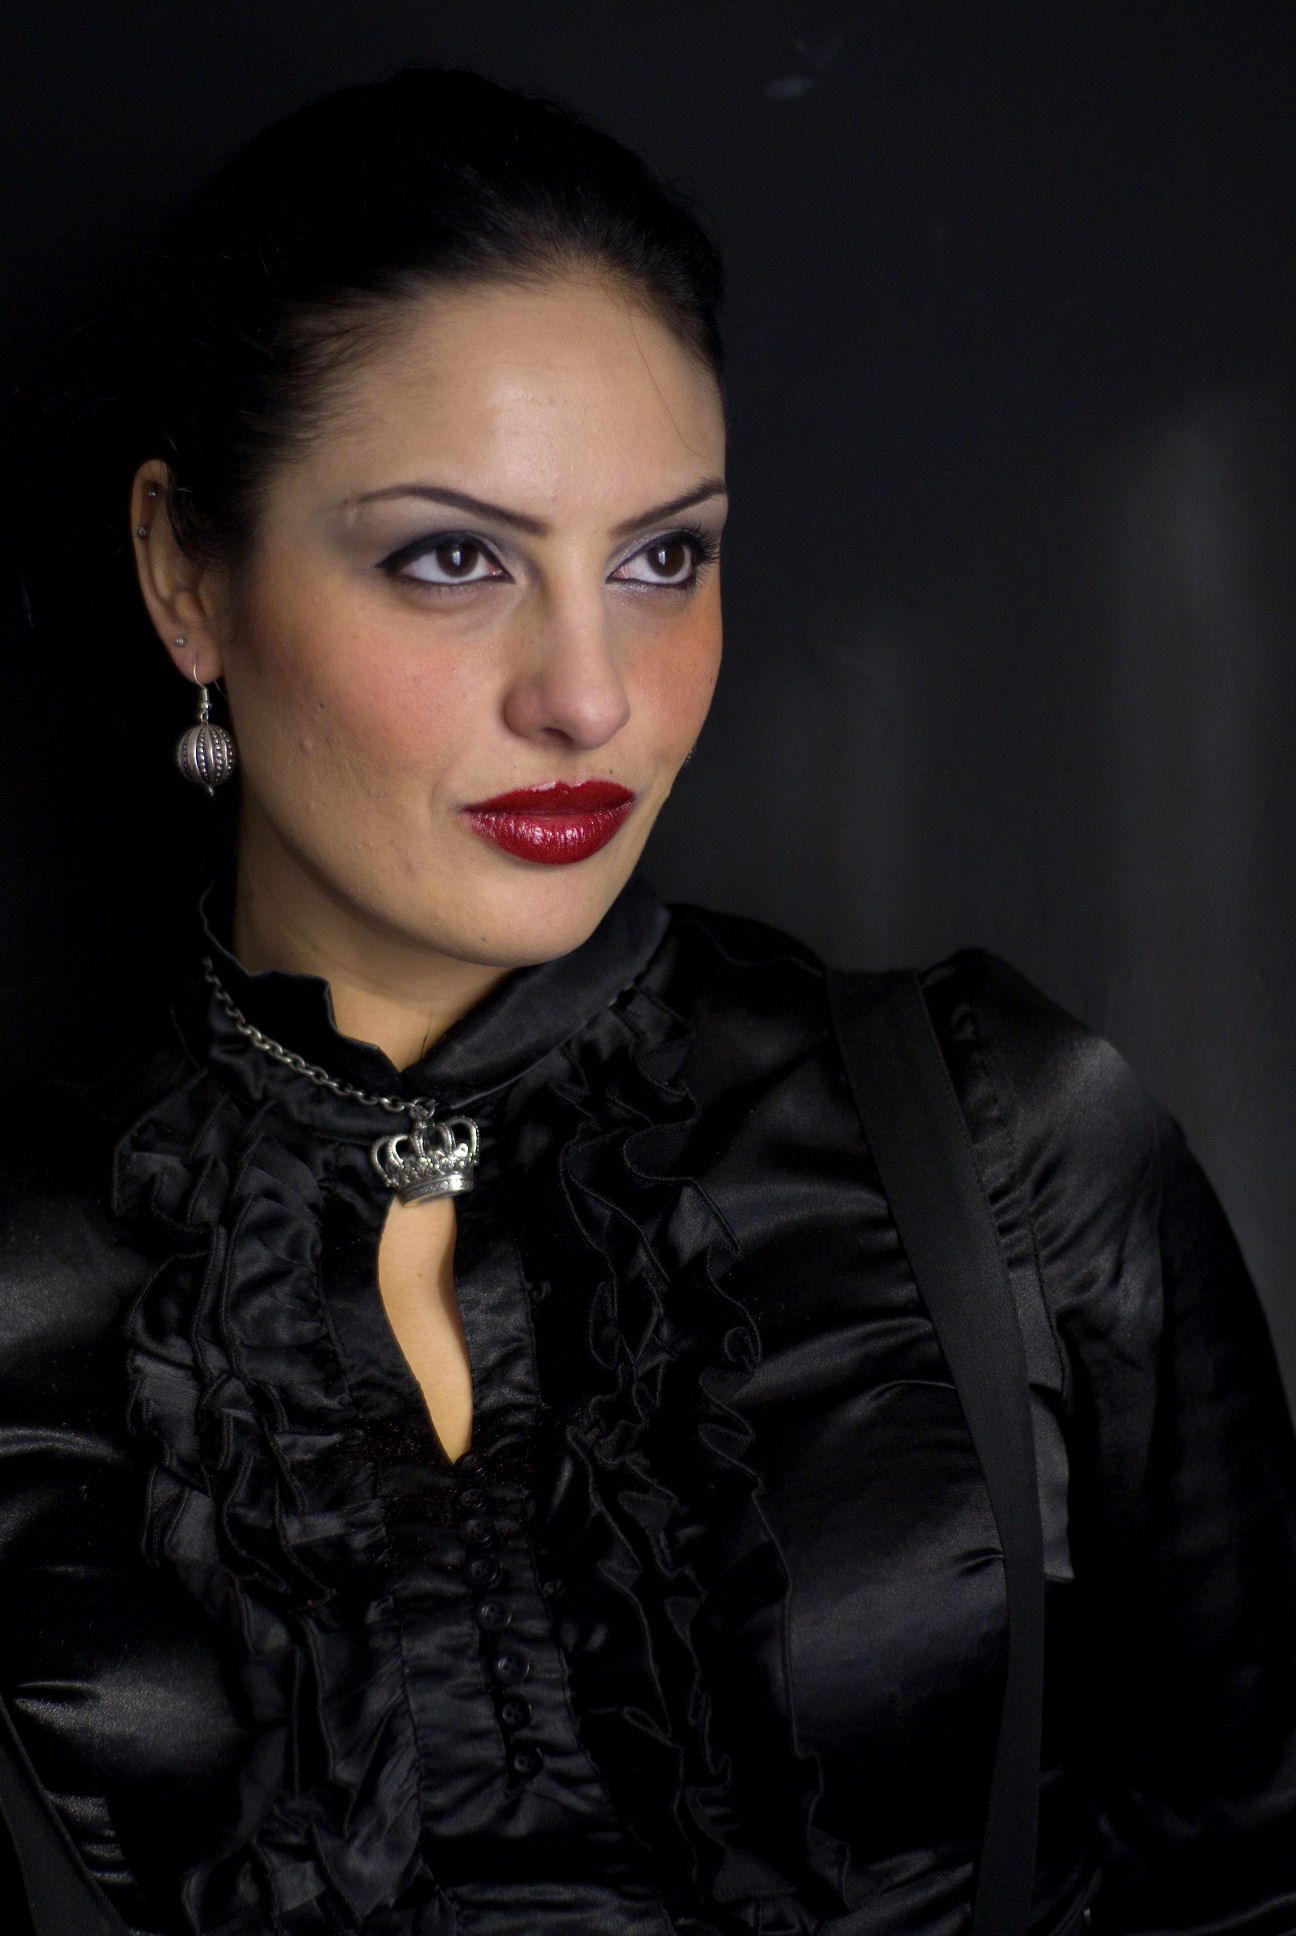 mistress ezada sinn about me tease and denial chastity mistress ezada